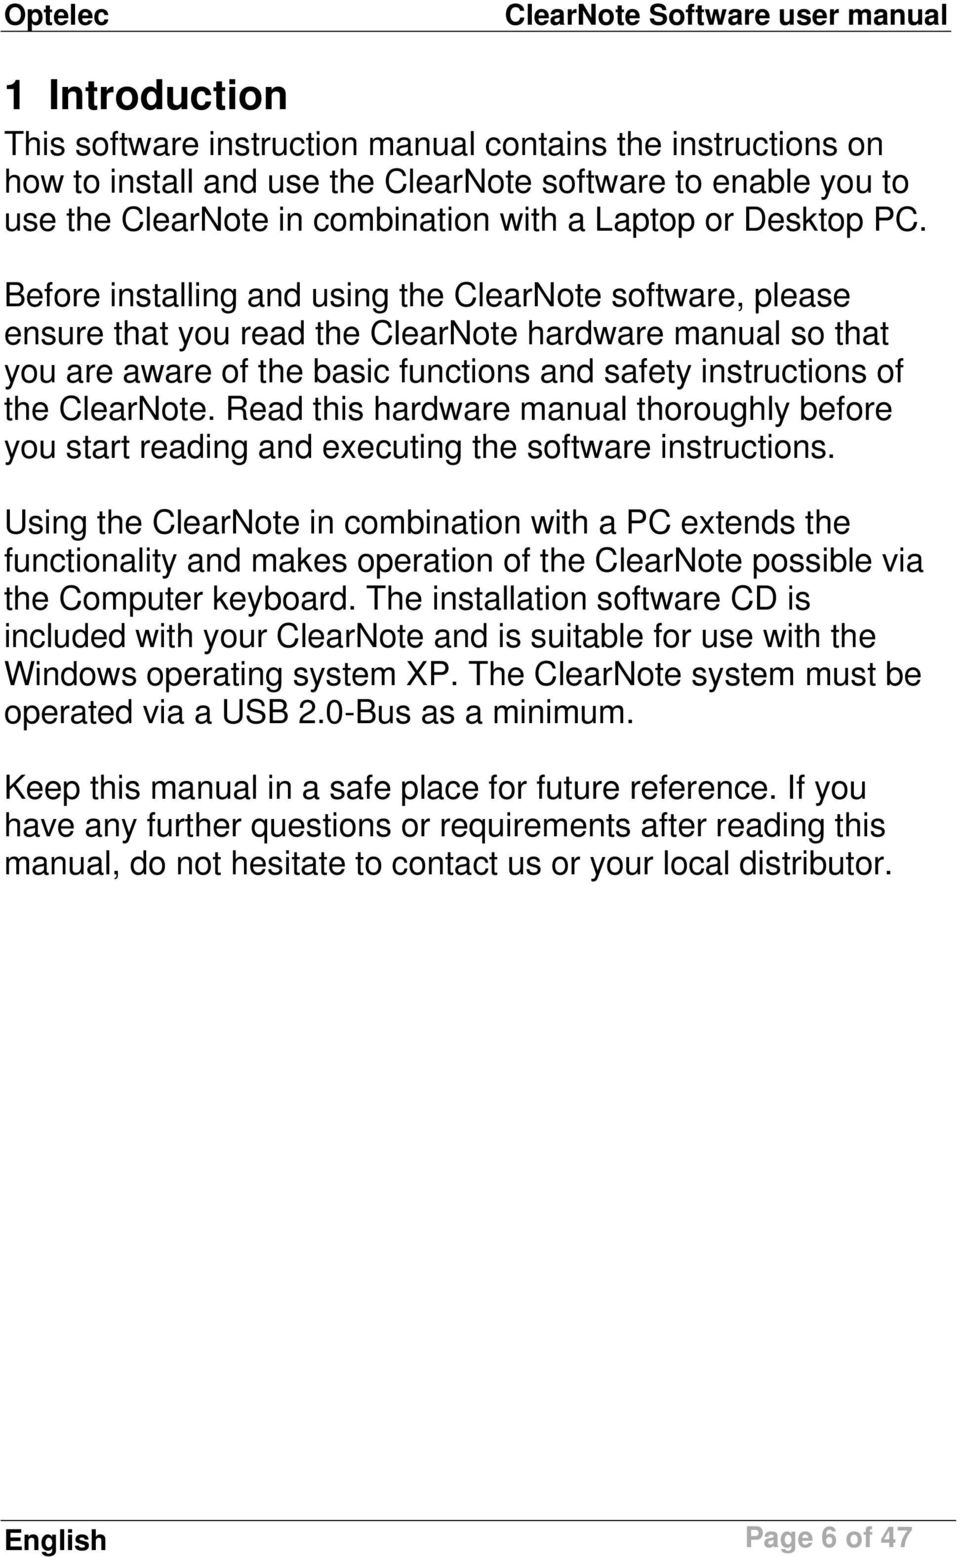 Before installing and using the ClearNote software, please ensure that you read the ClearNote hardware manual so that you are aware of the basic functions and safety instructions of the ClearNote.